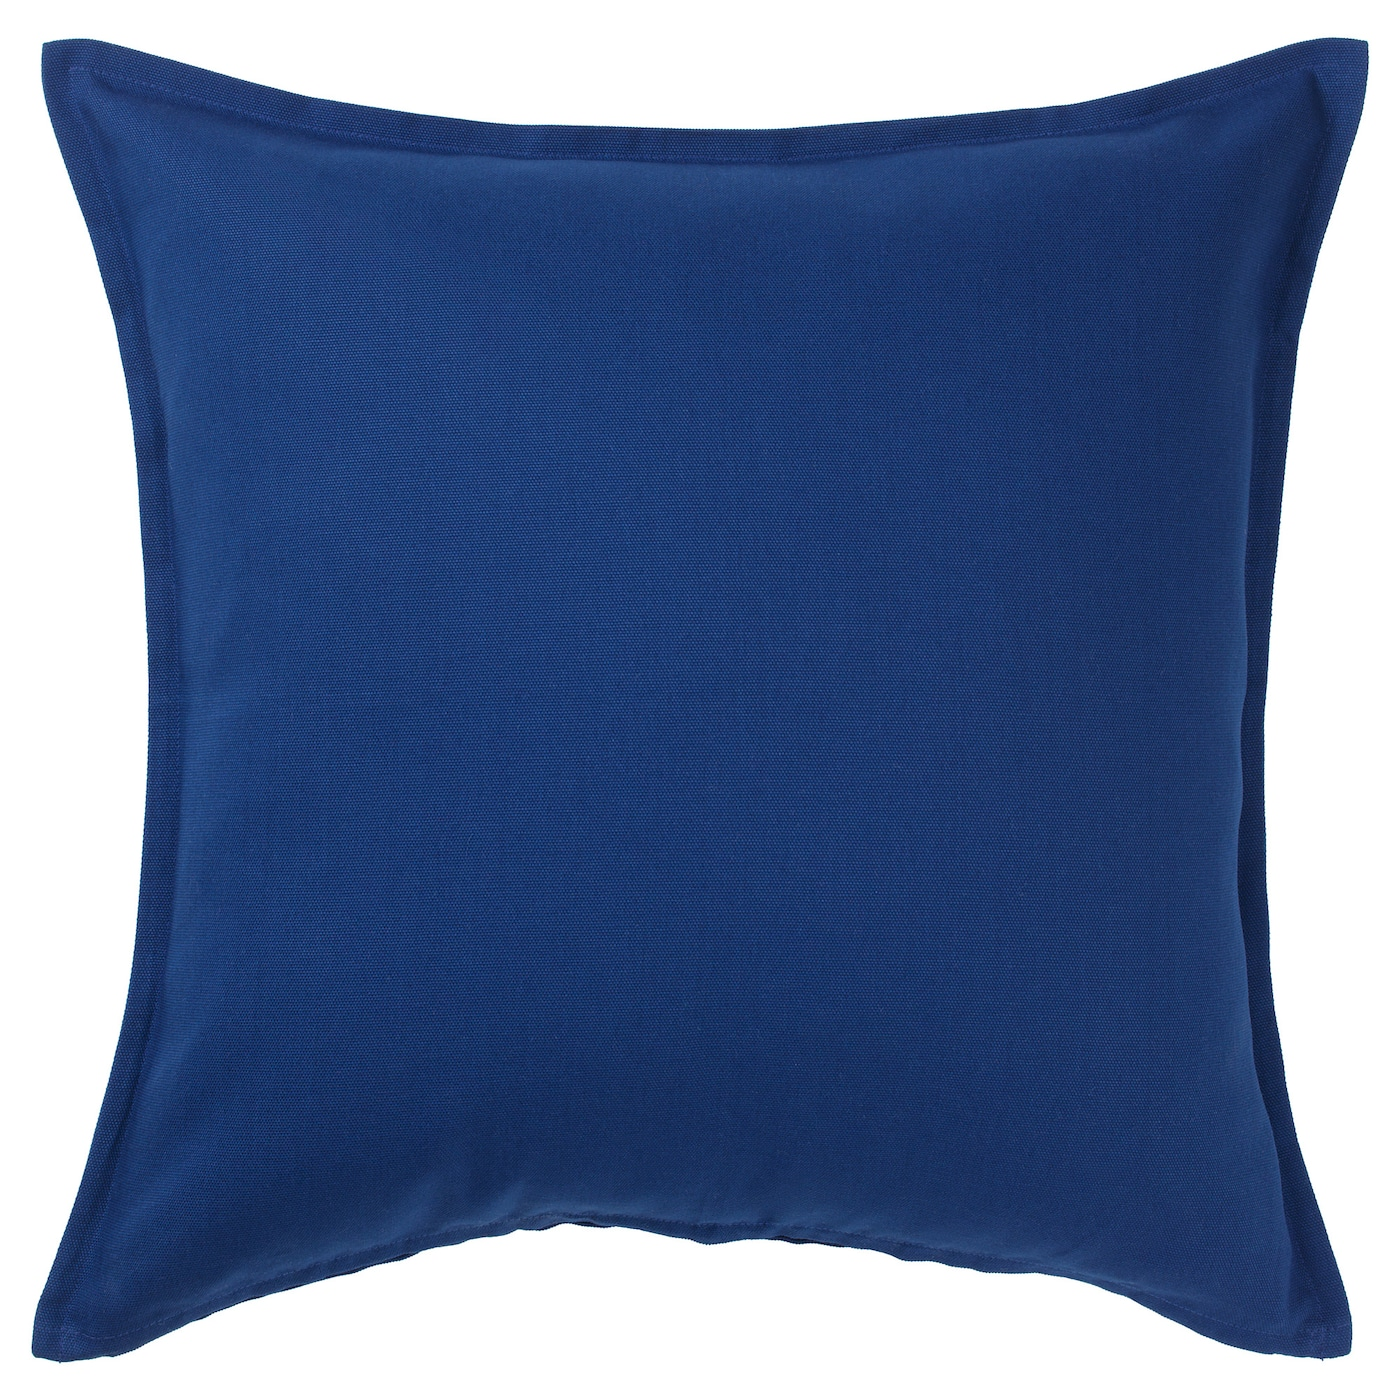 IKEA GURLI cushion cover Cotton is a soft and easy-care natural material that you can machine wash.